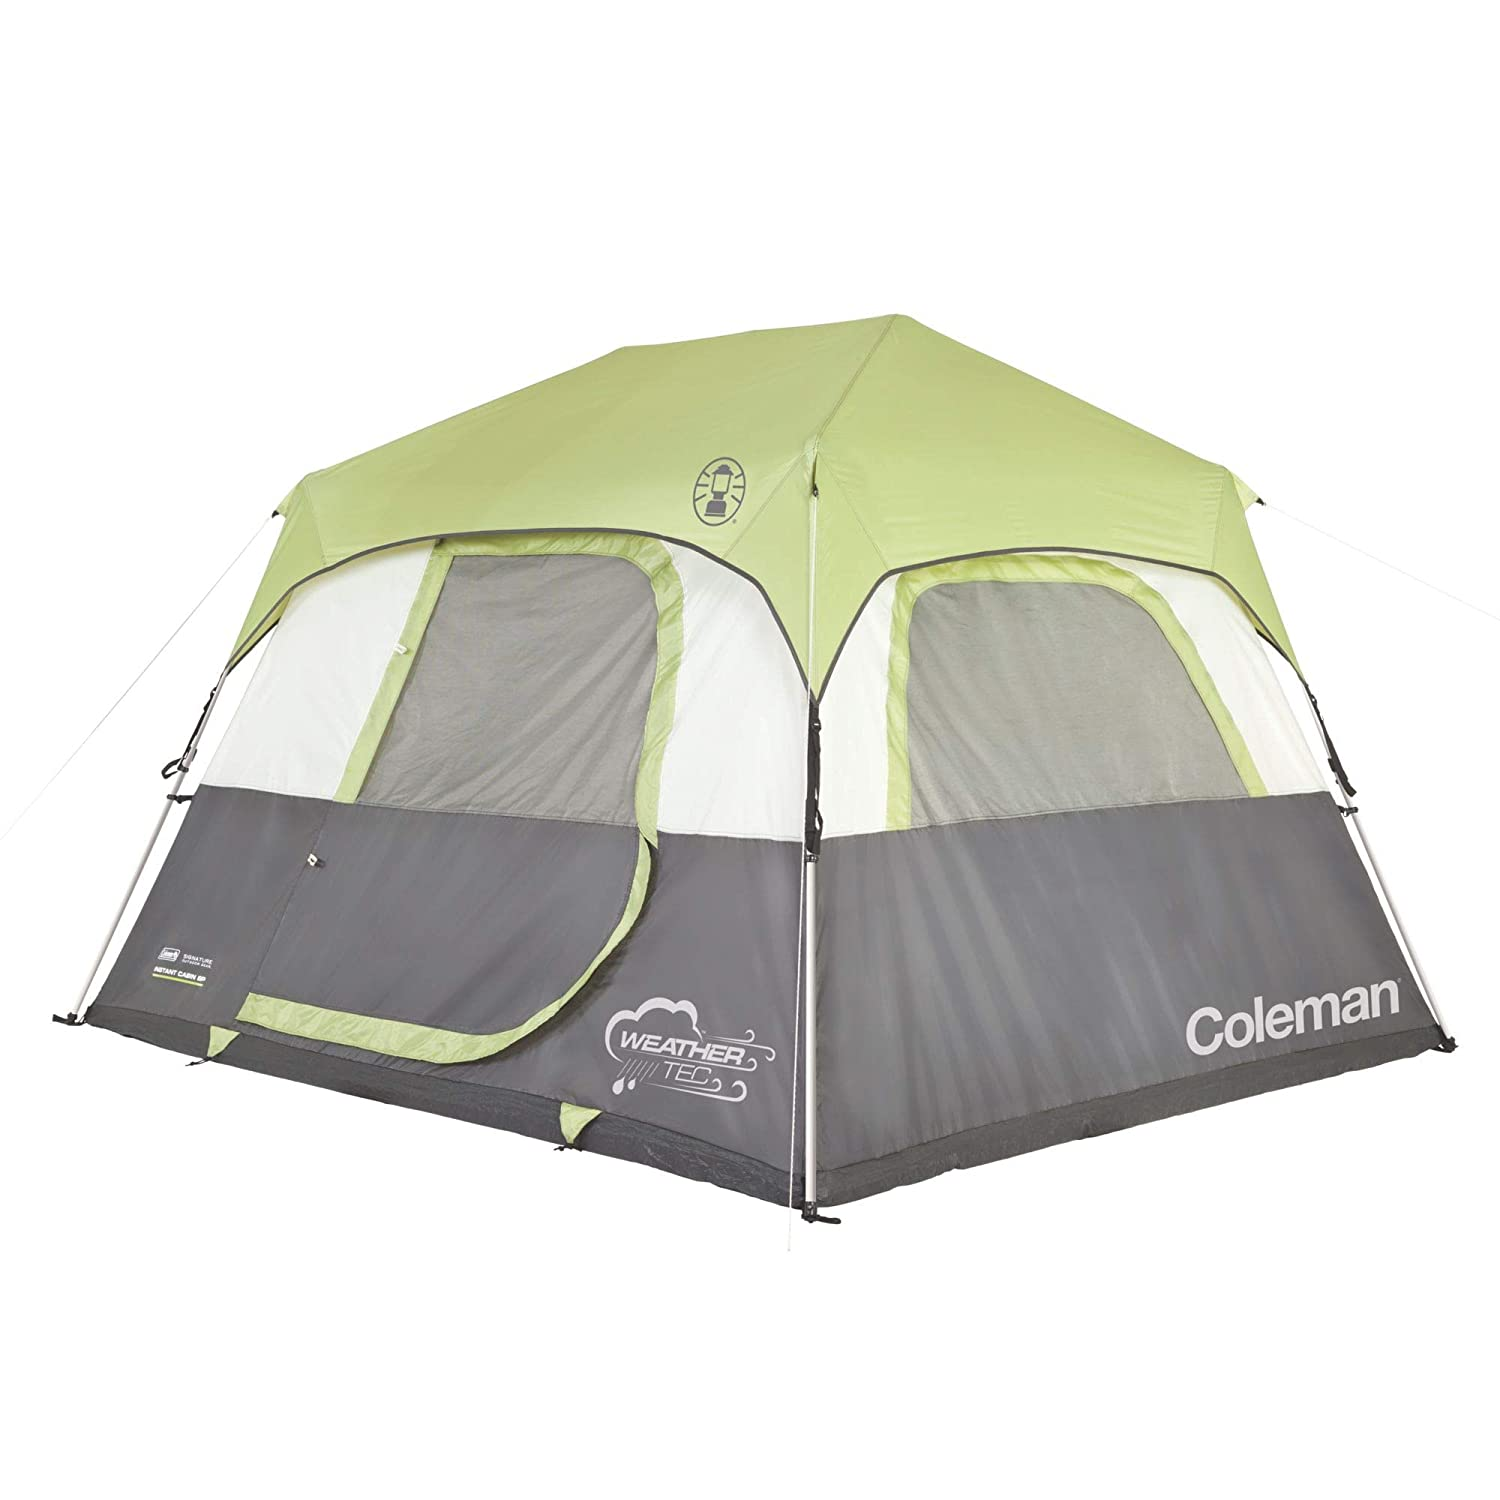 Coleman New Outdoor Camping Waterproof 6 Person Instant Tent, best Instant tents